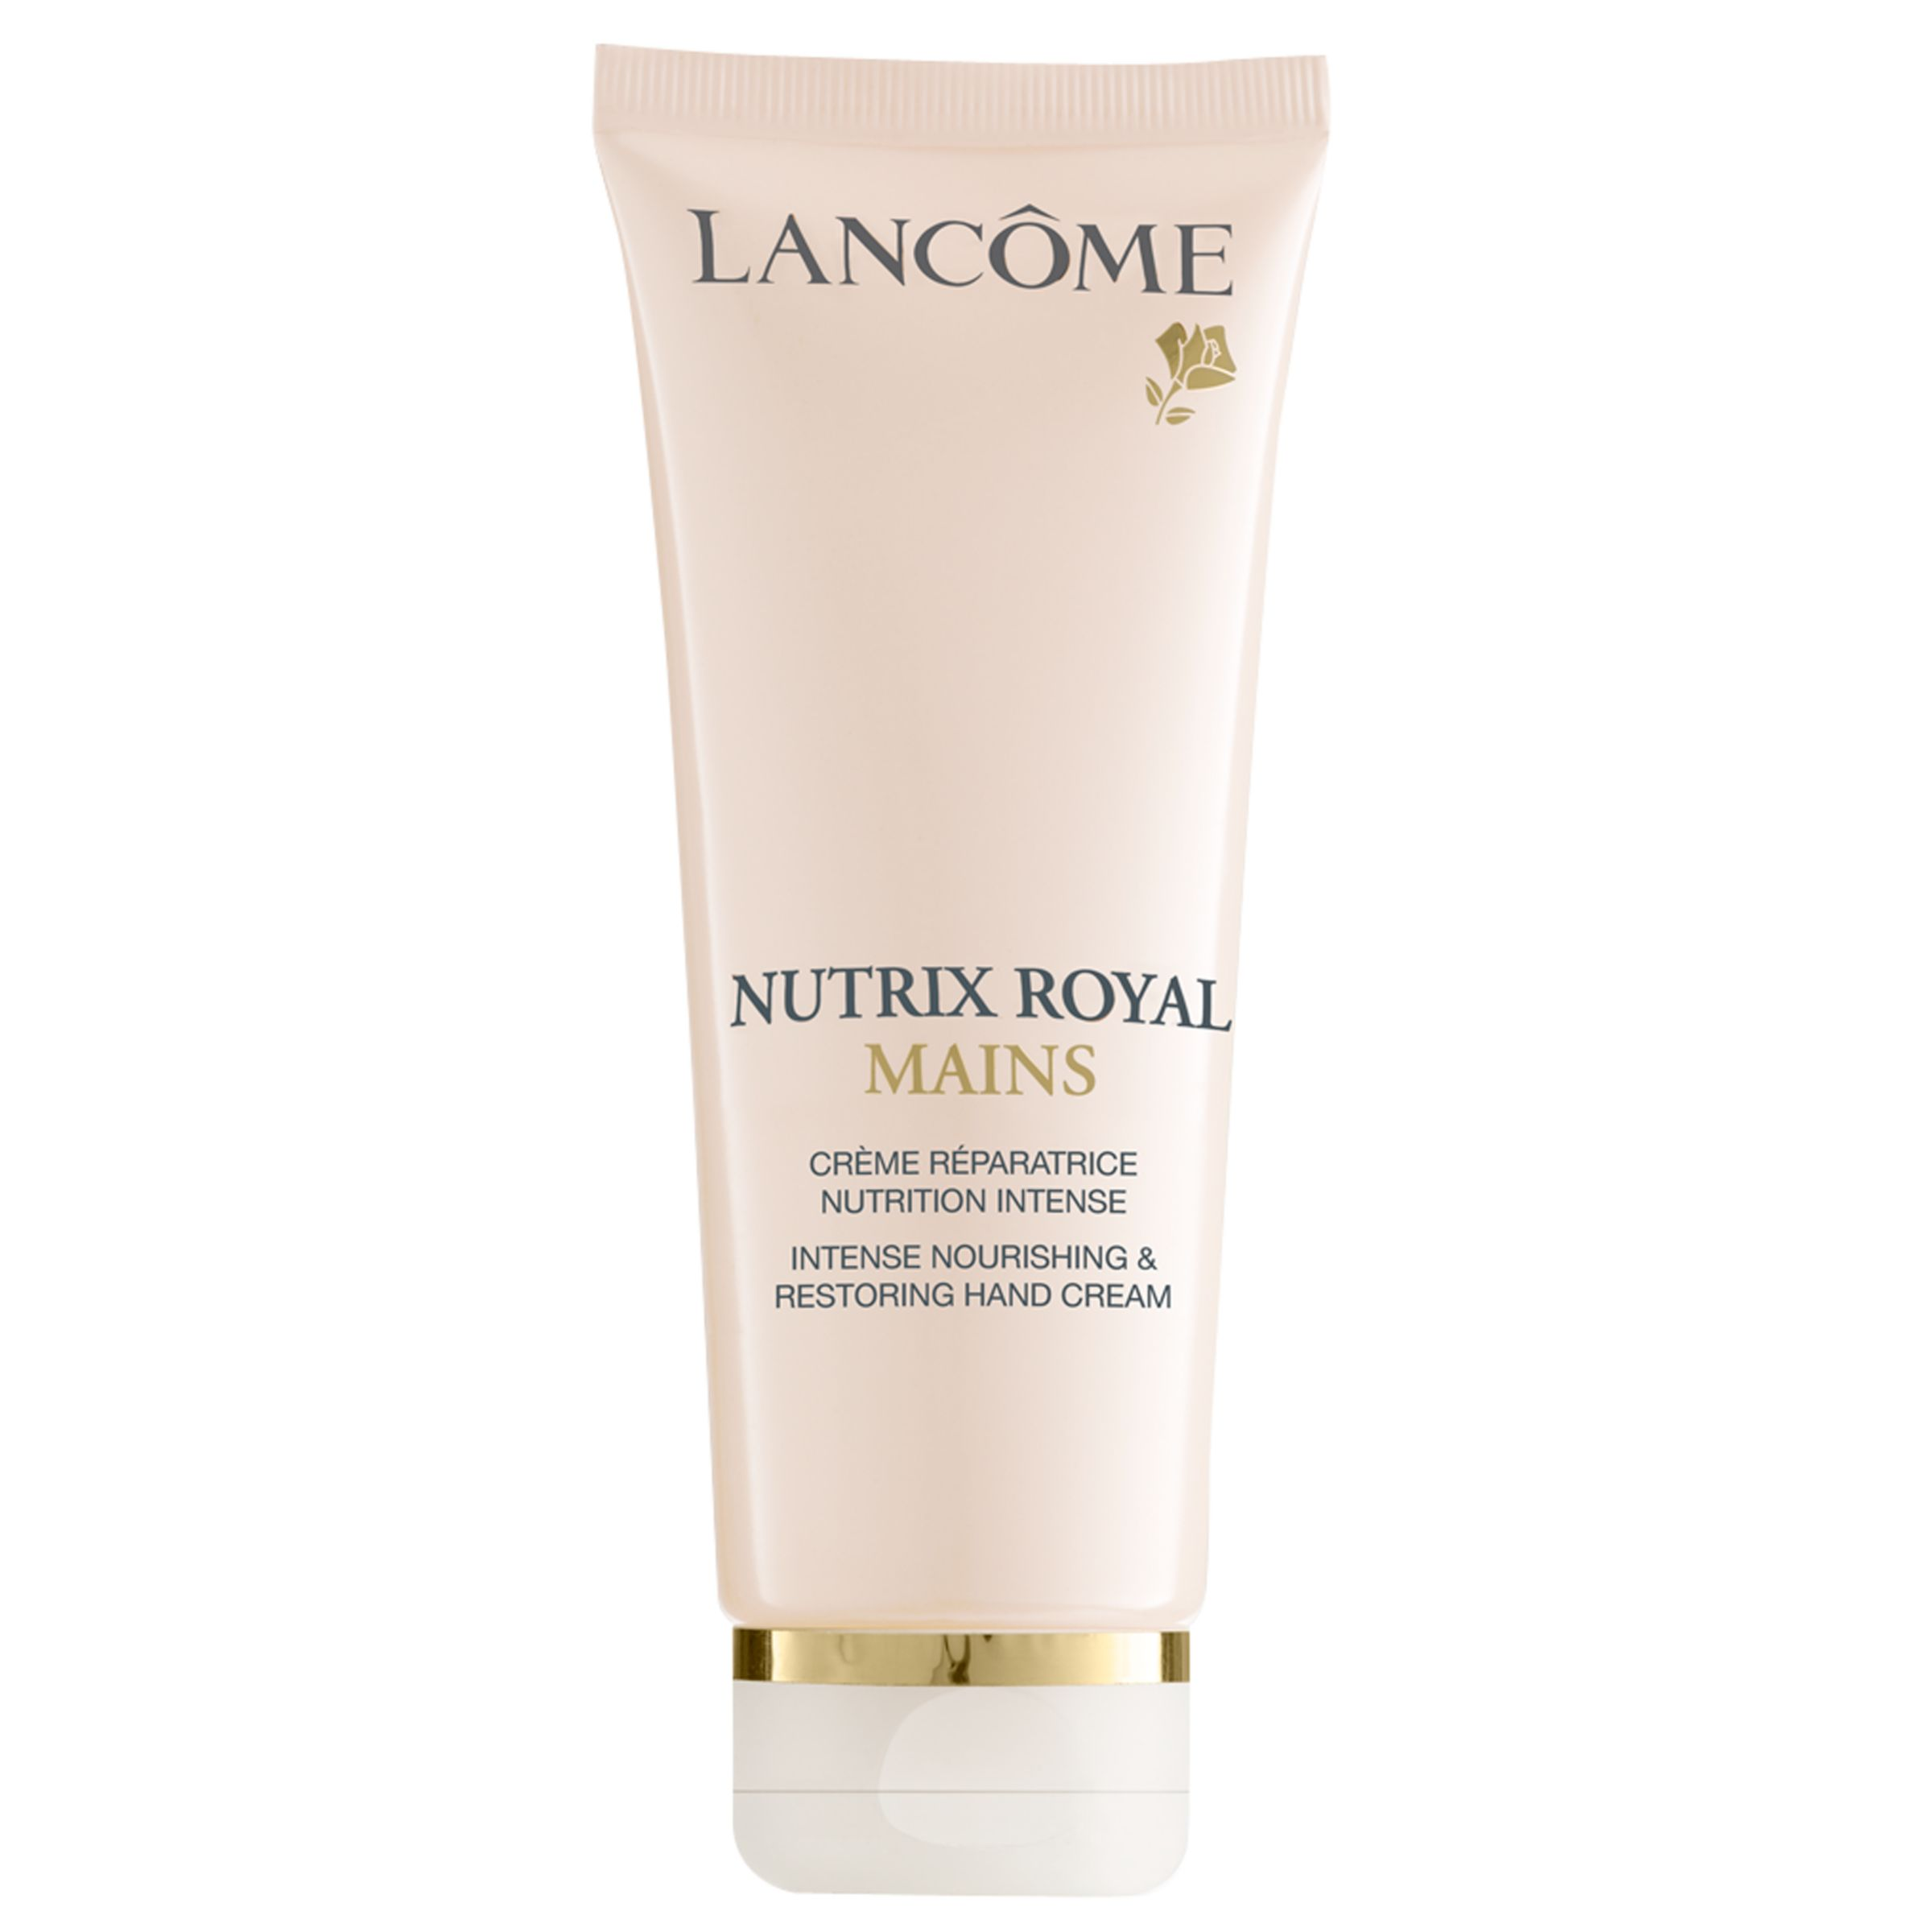 Lancome Lancôme Nutrix Royal Hands, 100ml